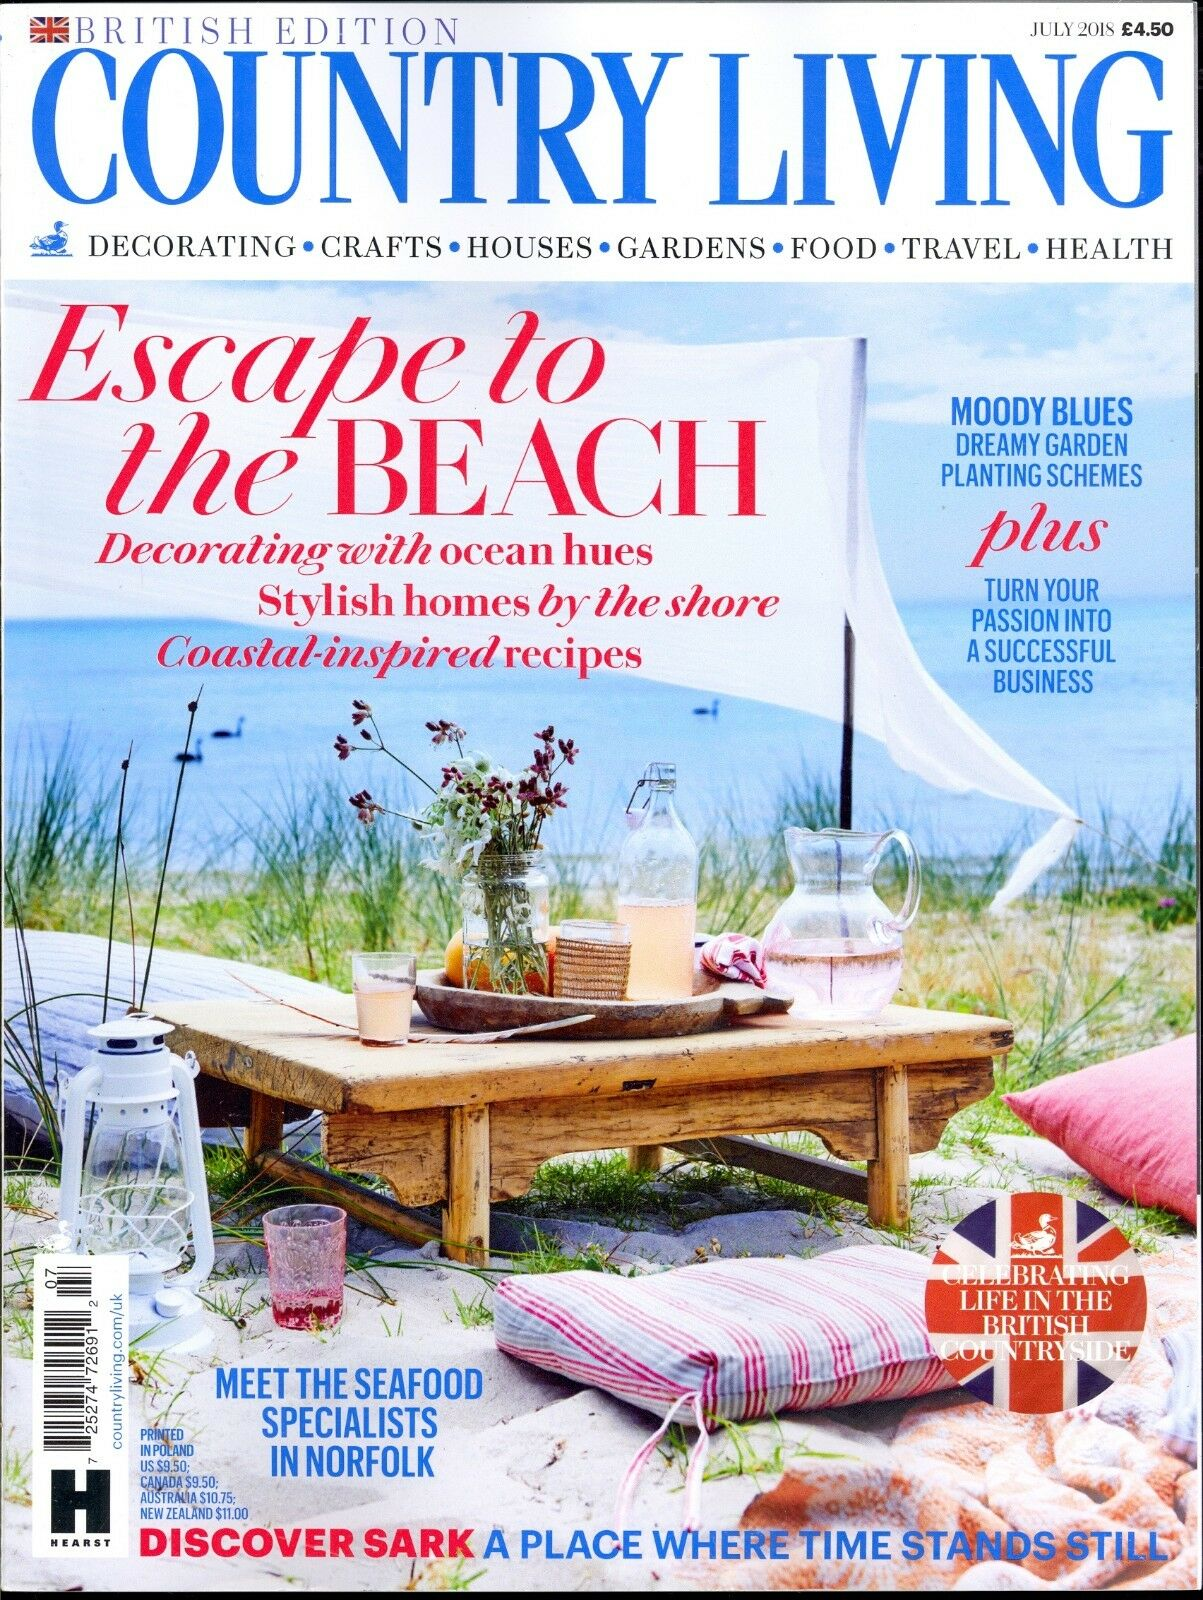 ... UPC 725274726912 Product Image For Country Living June 2018 British  Edition Decorating Crafts Gardens Health Food ...